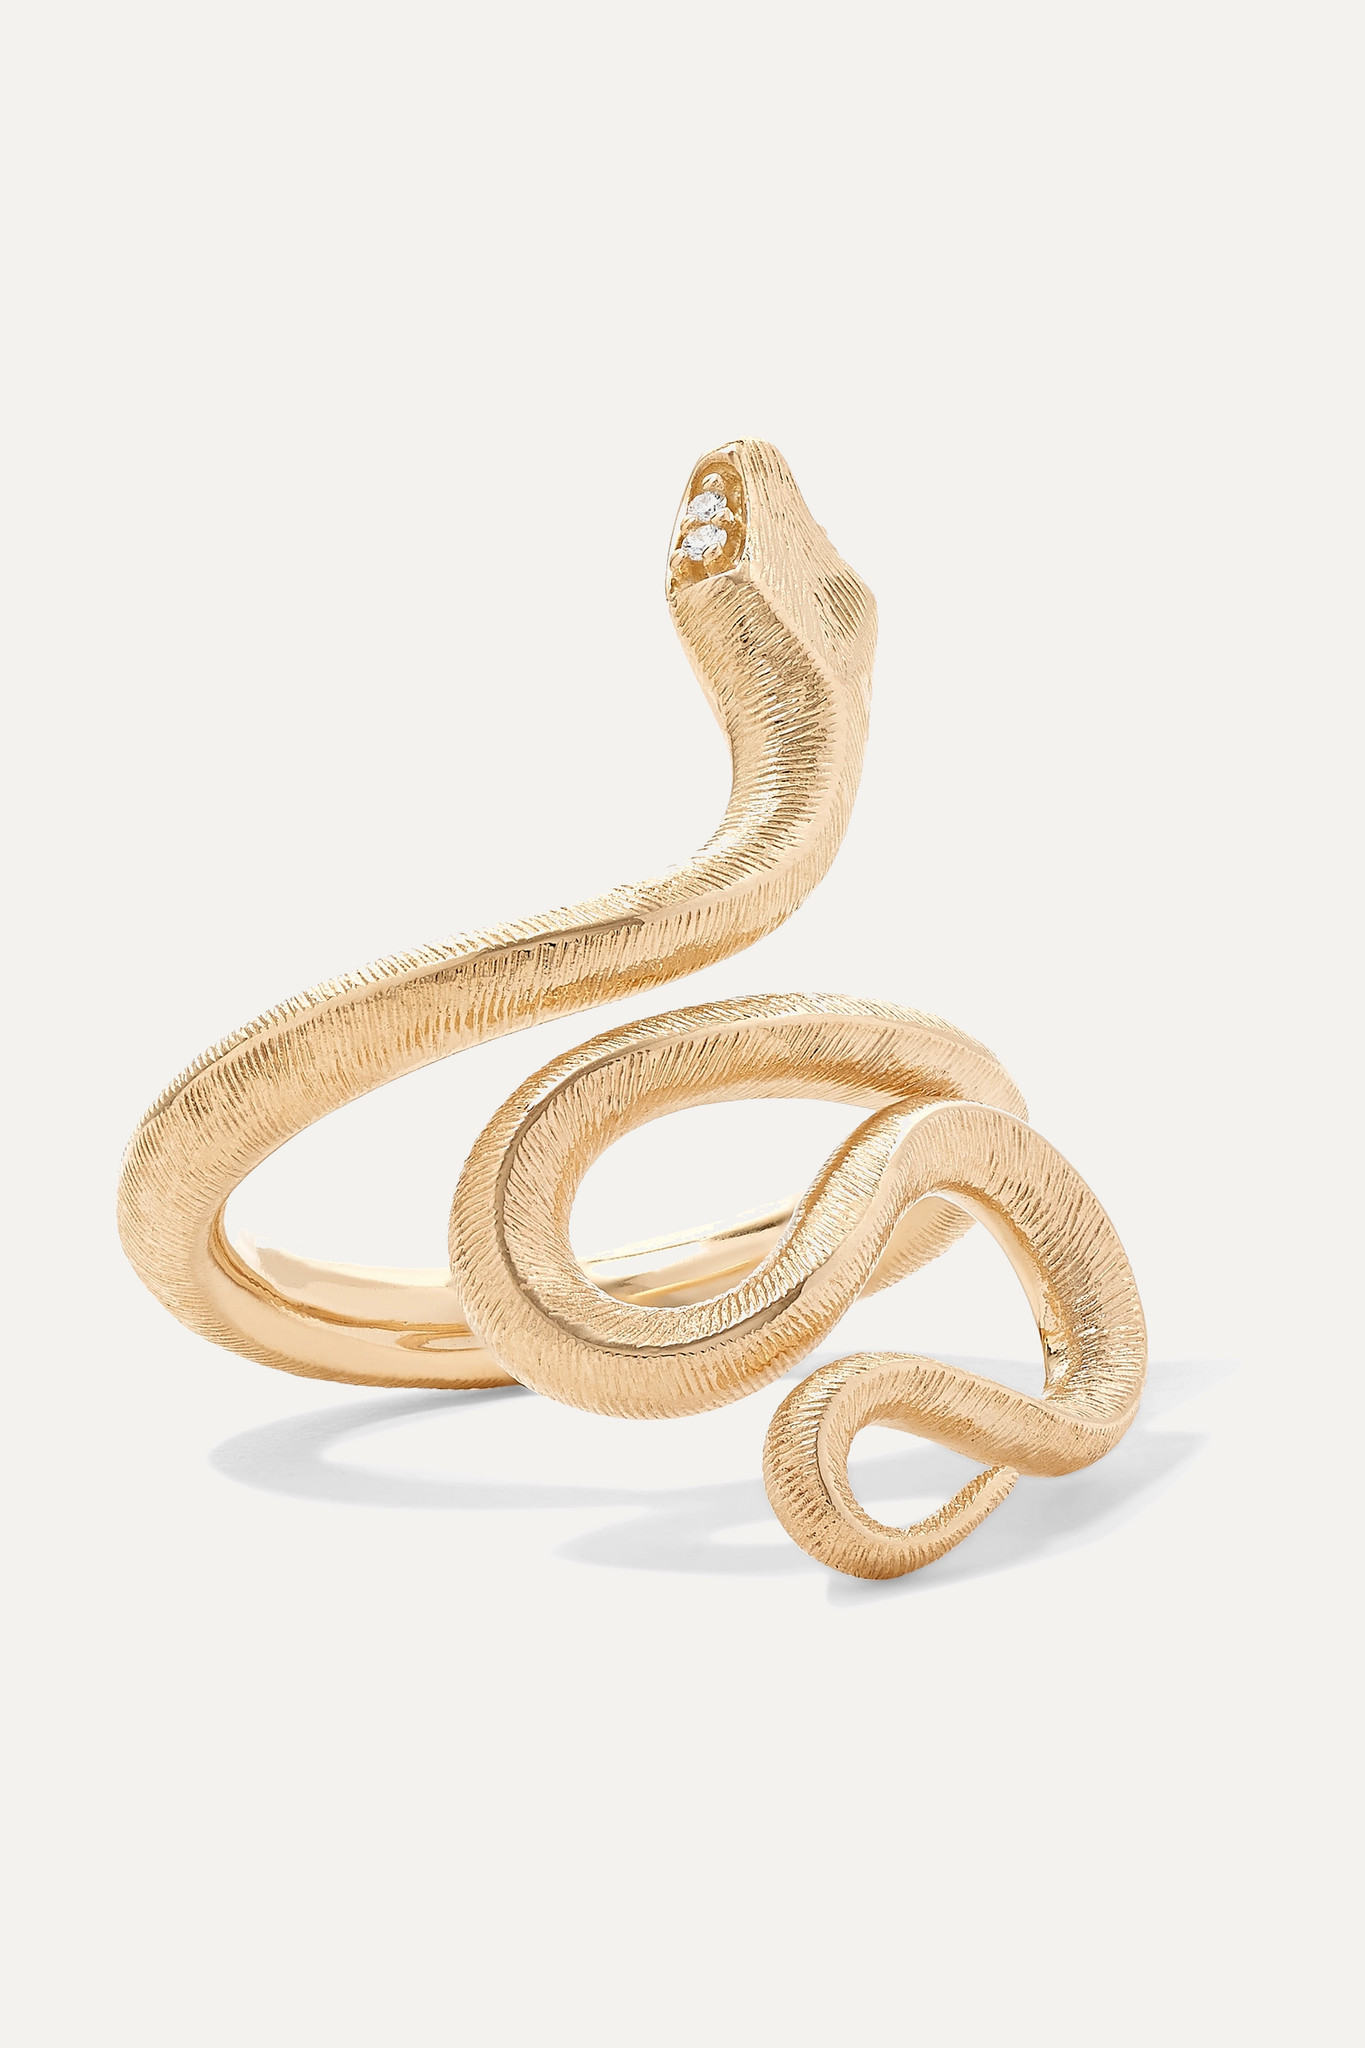 OLE LYNGGAARD COPENHAGEN - Snake Medium 18-karat Gold Diamond Ring - 5